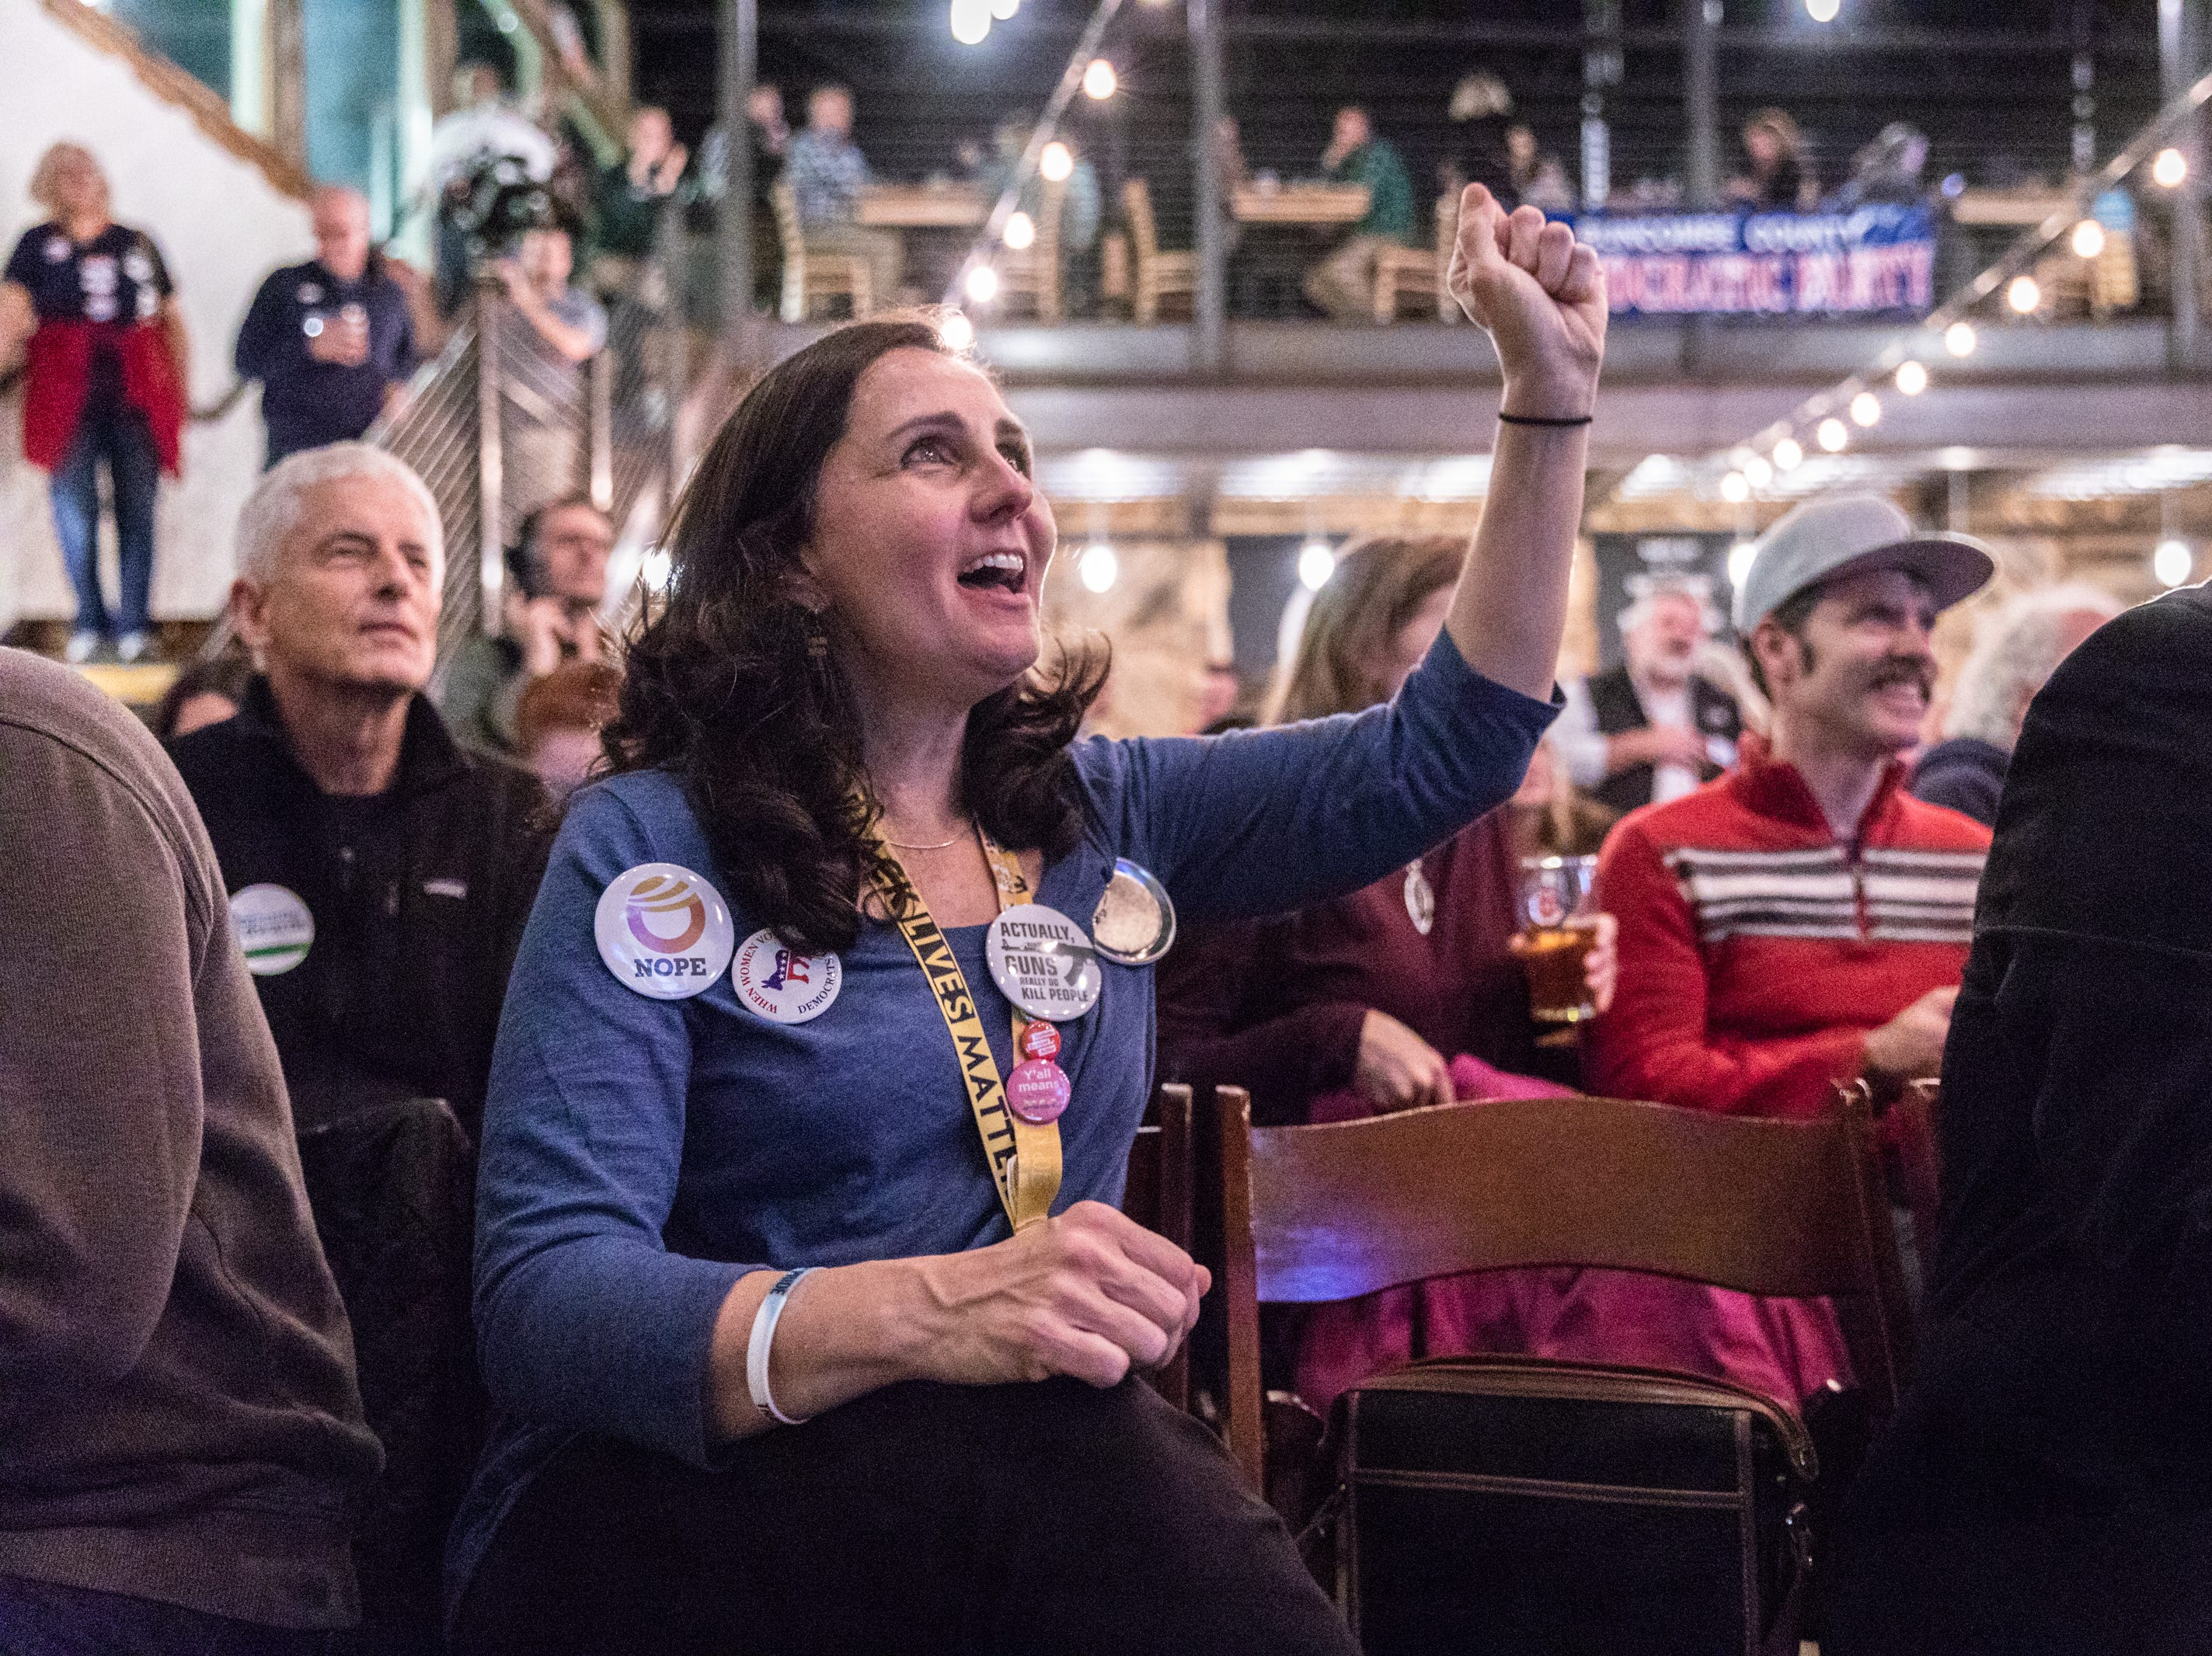 Julie Lehman, of Asheville, cheers as she watches favorable results come in at the Buncombe County Democratic Party's election night party at Highland Brewing Nov. 6, 2018.